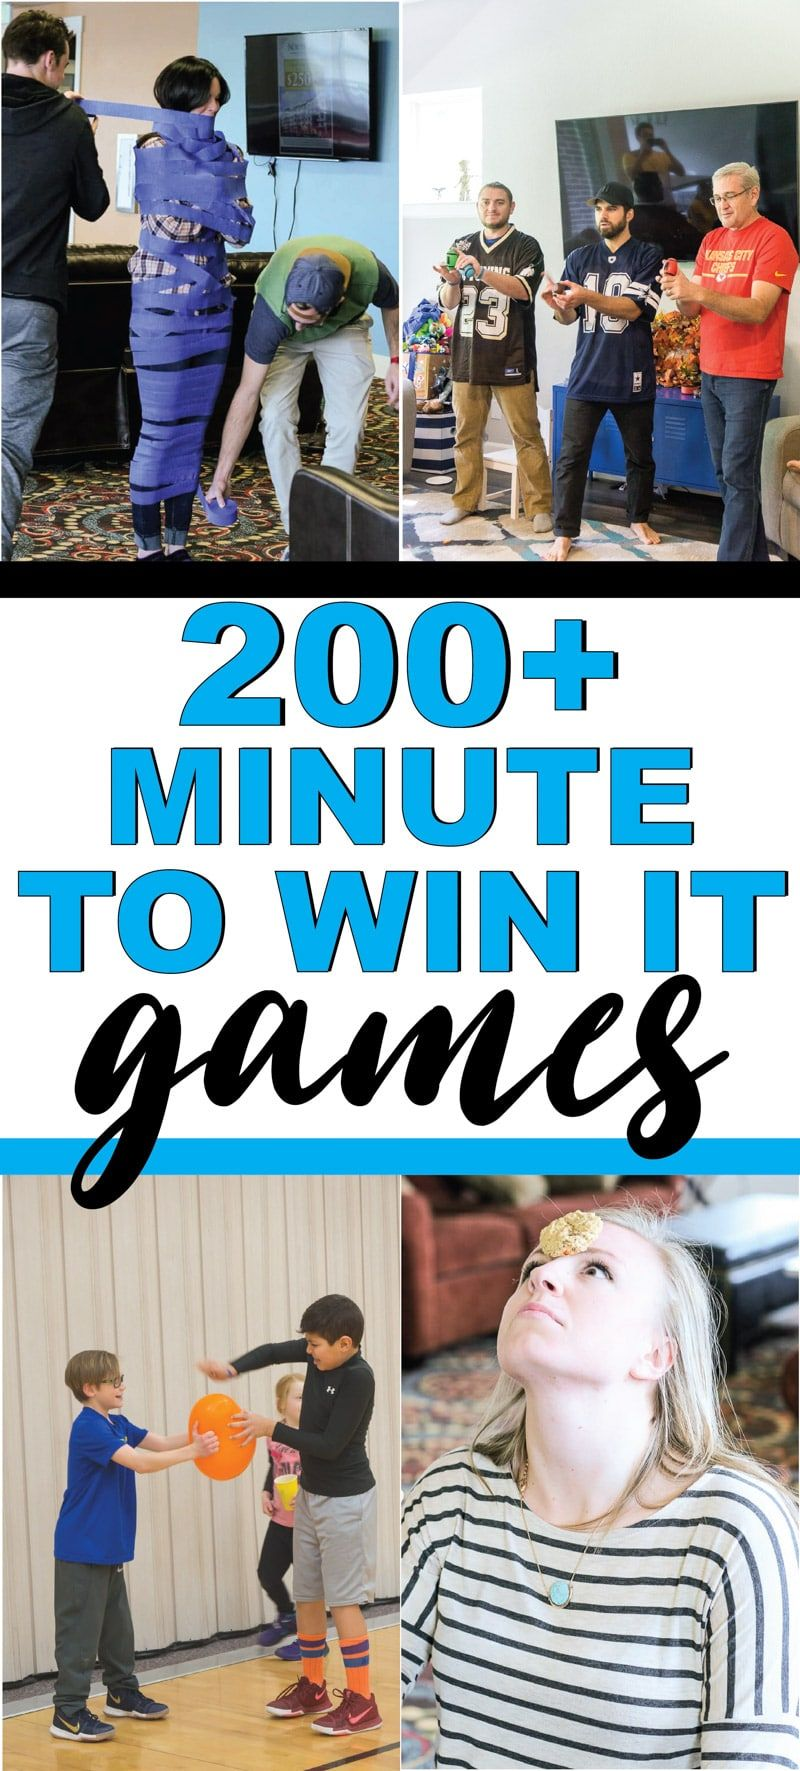 200+ Hilarious Minute to Win It Games Everyone Will Absolutely Love